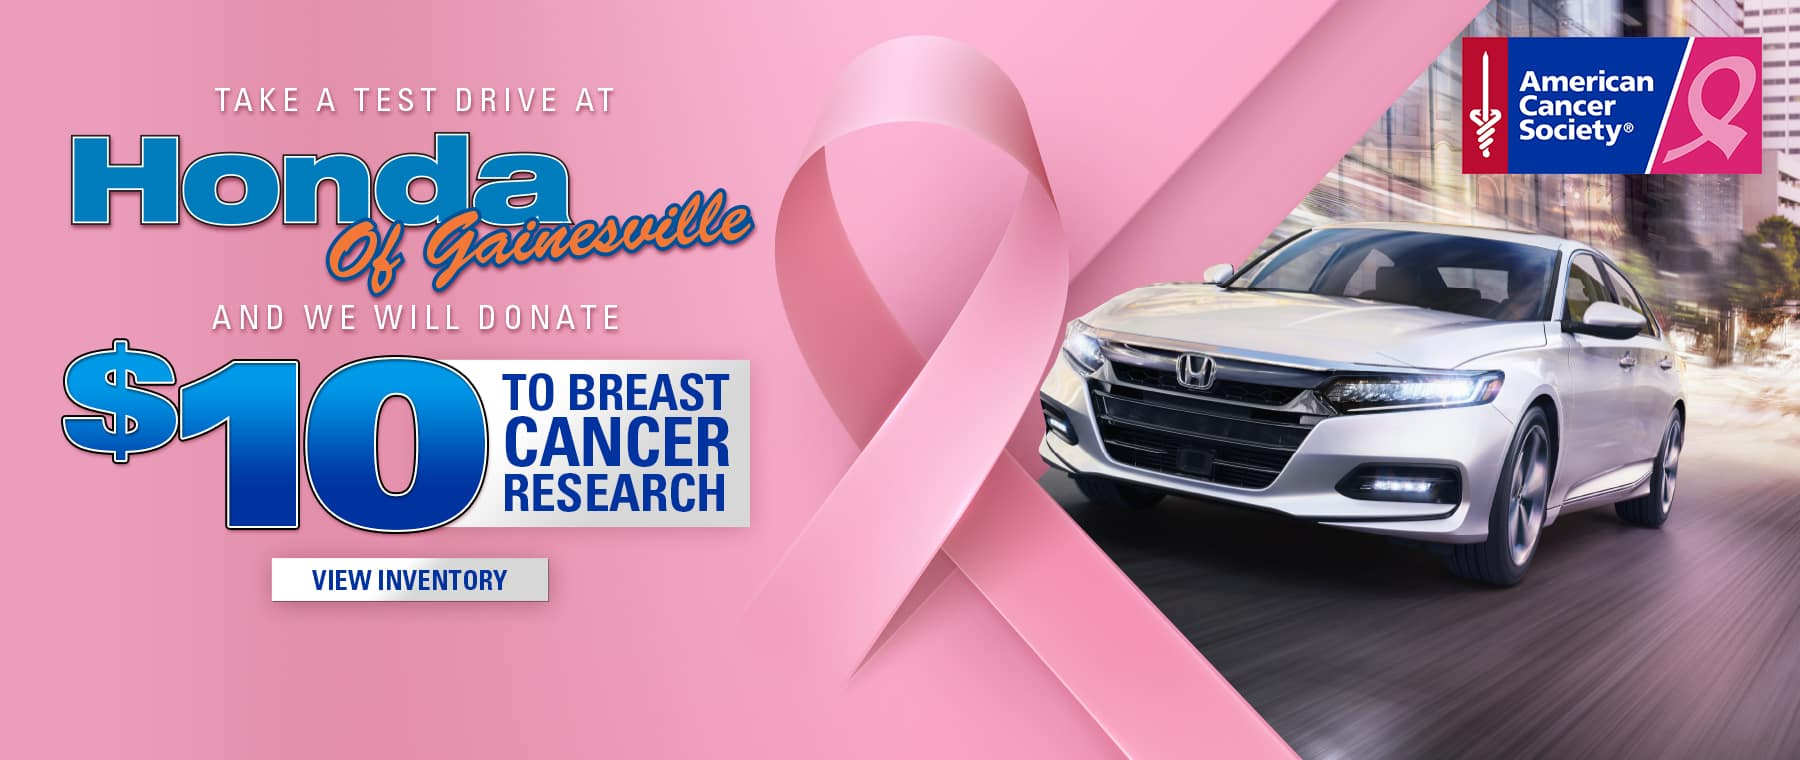 Take A Test Drive At Honda of Gainesville And We Will Donate $10 To Breast Cancer Research